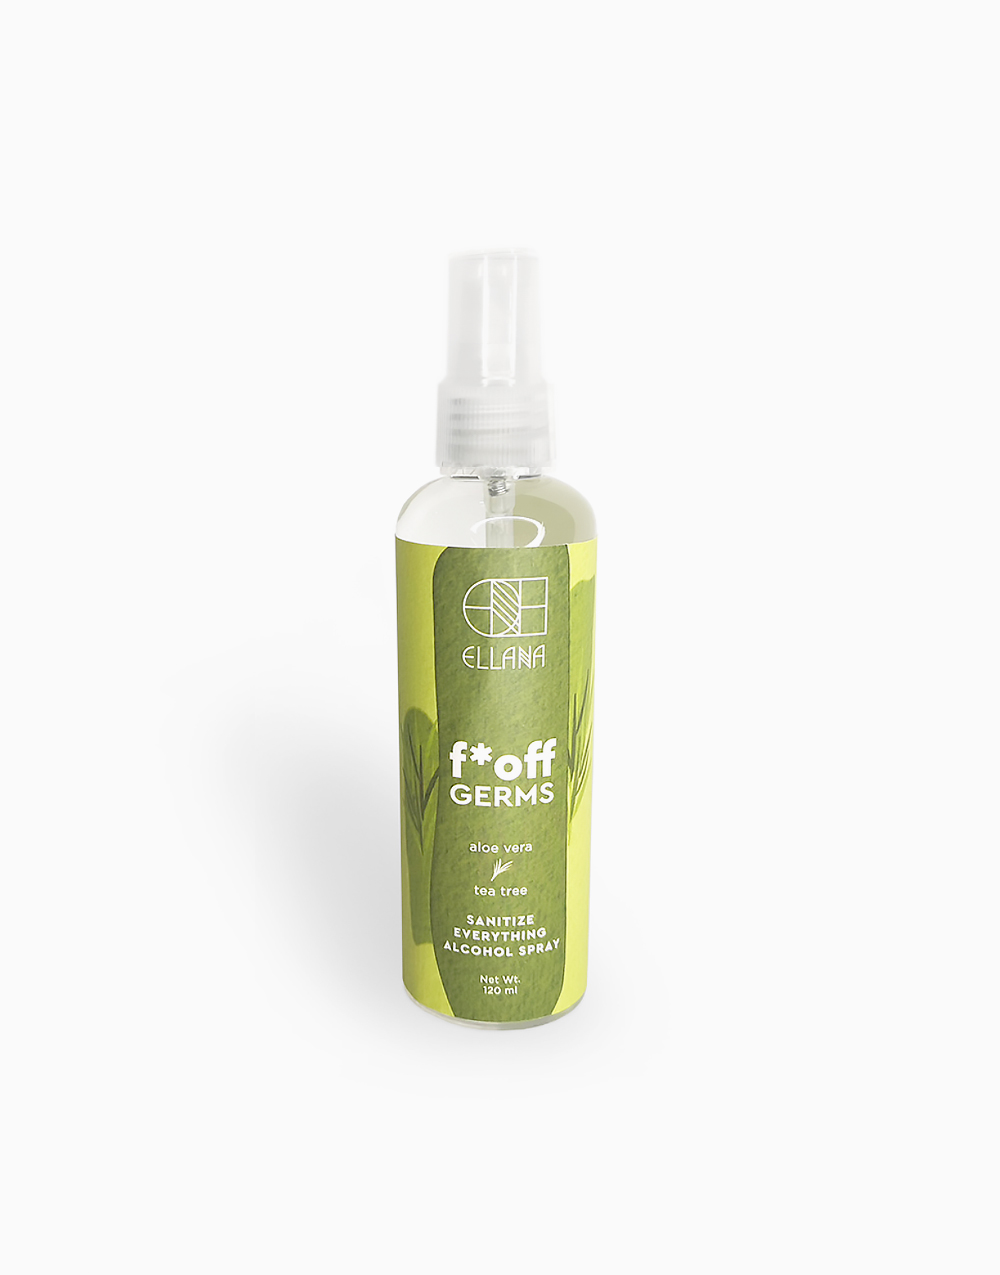 F*Off Germs Sanitize Everything Alcohol Spray by Ellana Mineral Cosmetics